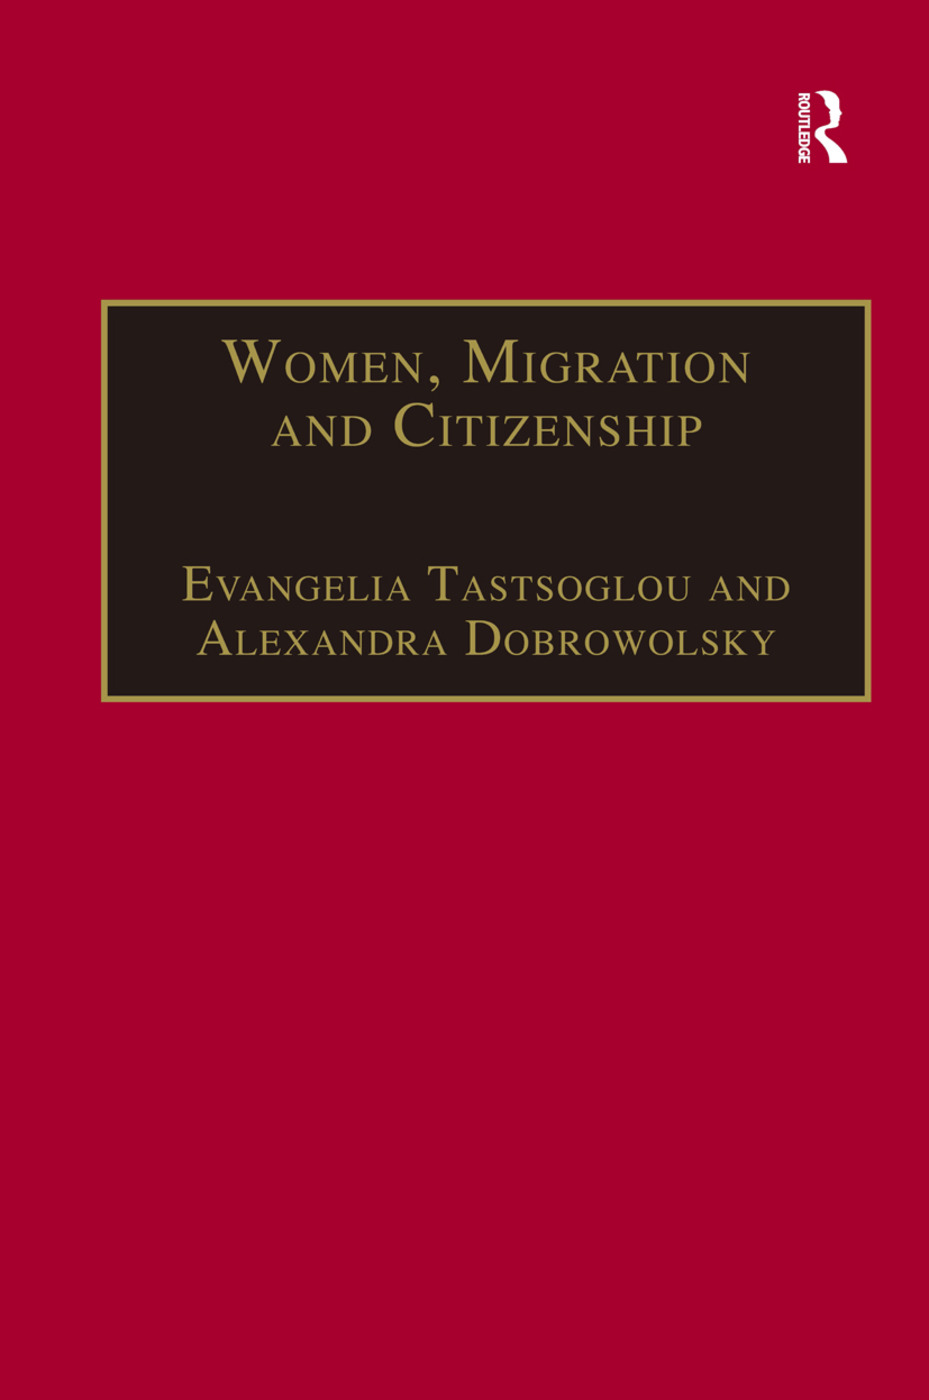 Women, Migration and Citizenship